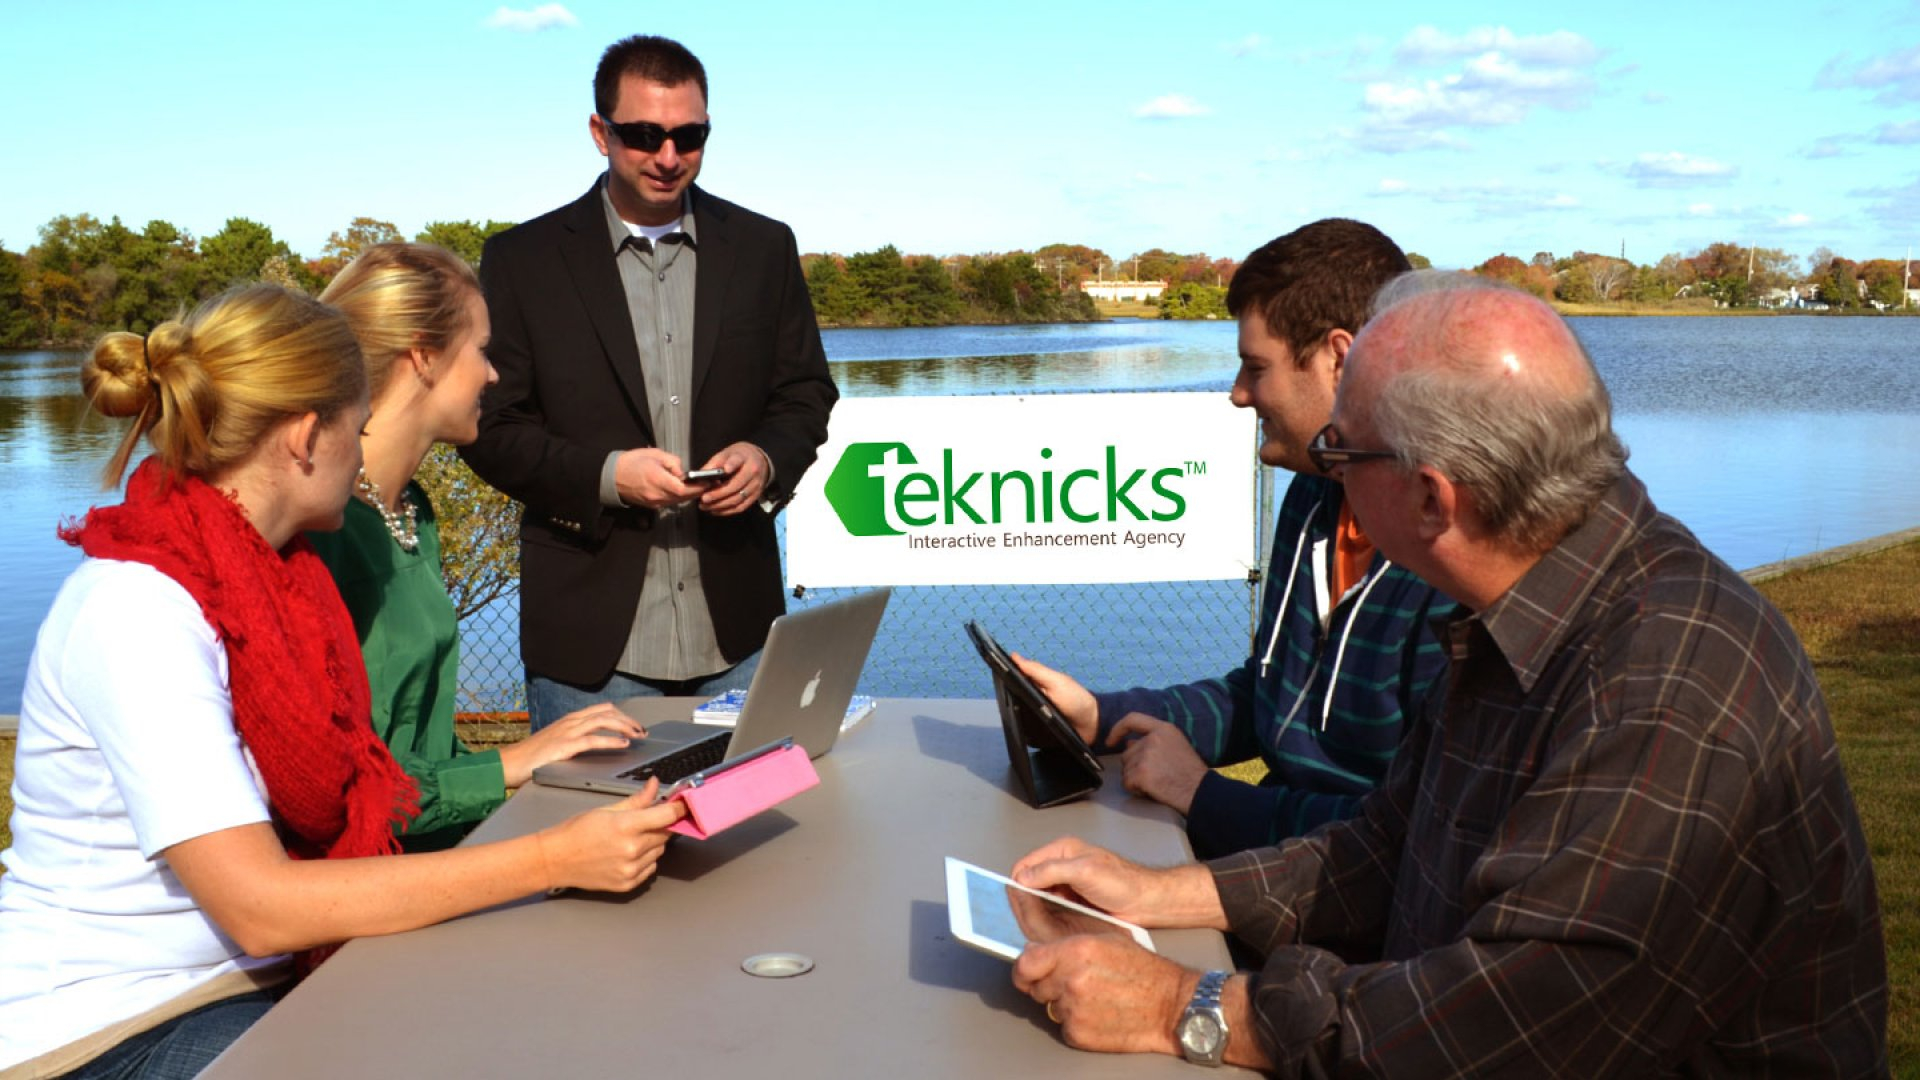 Nick Chasinov meets with staffers at his company's private waterfront courtyard in Bay Head, New Jersey.